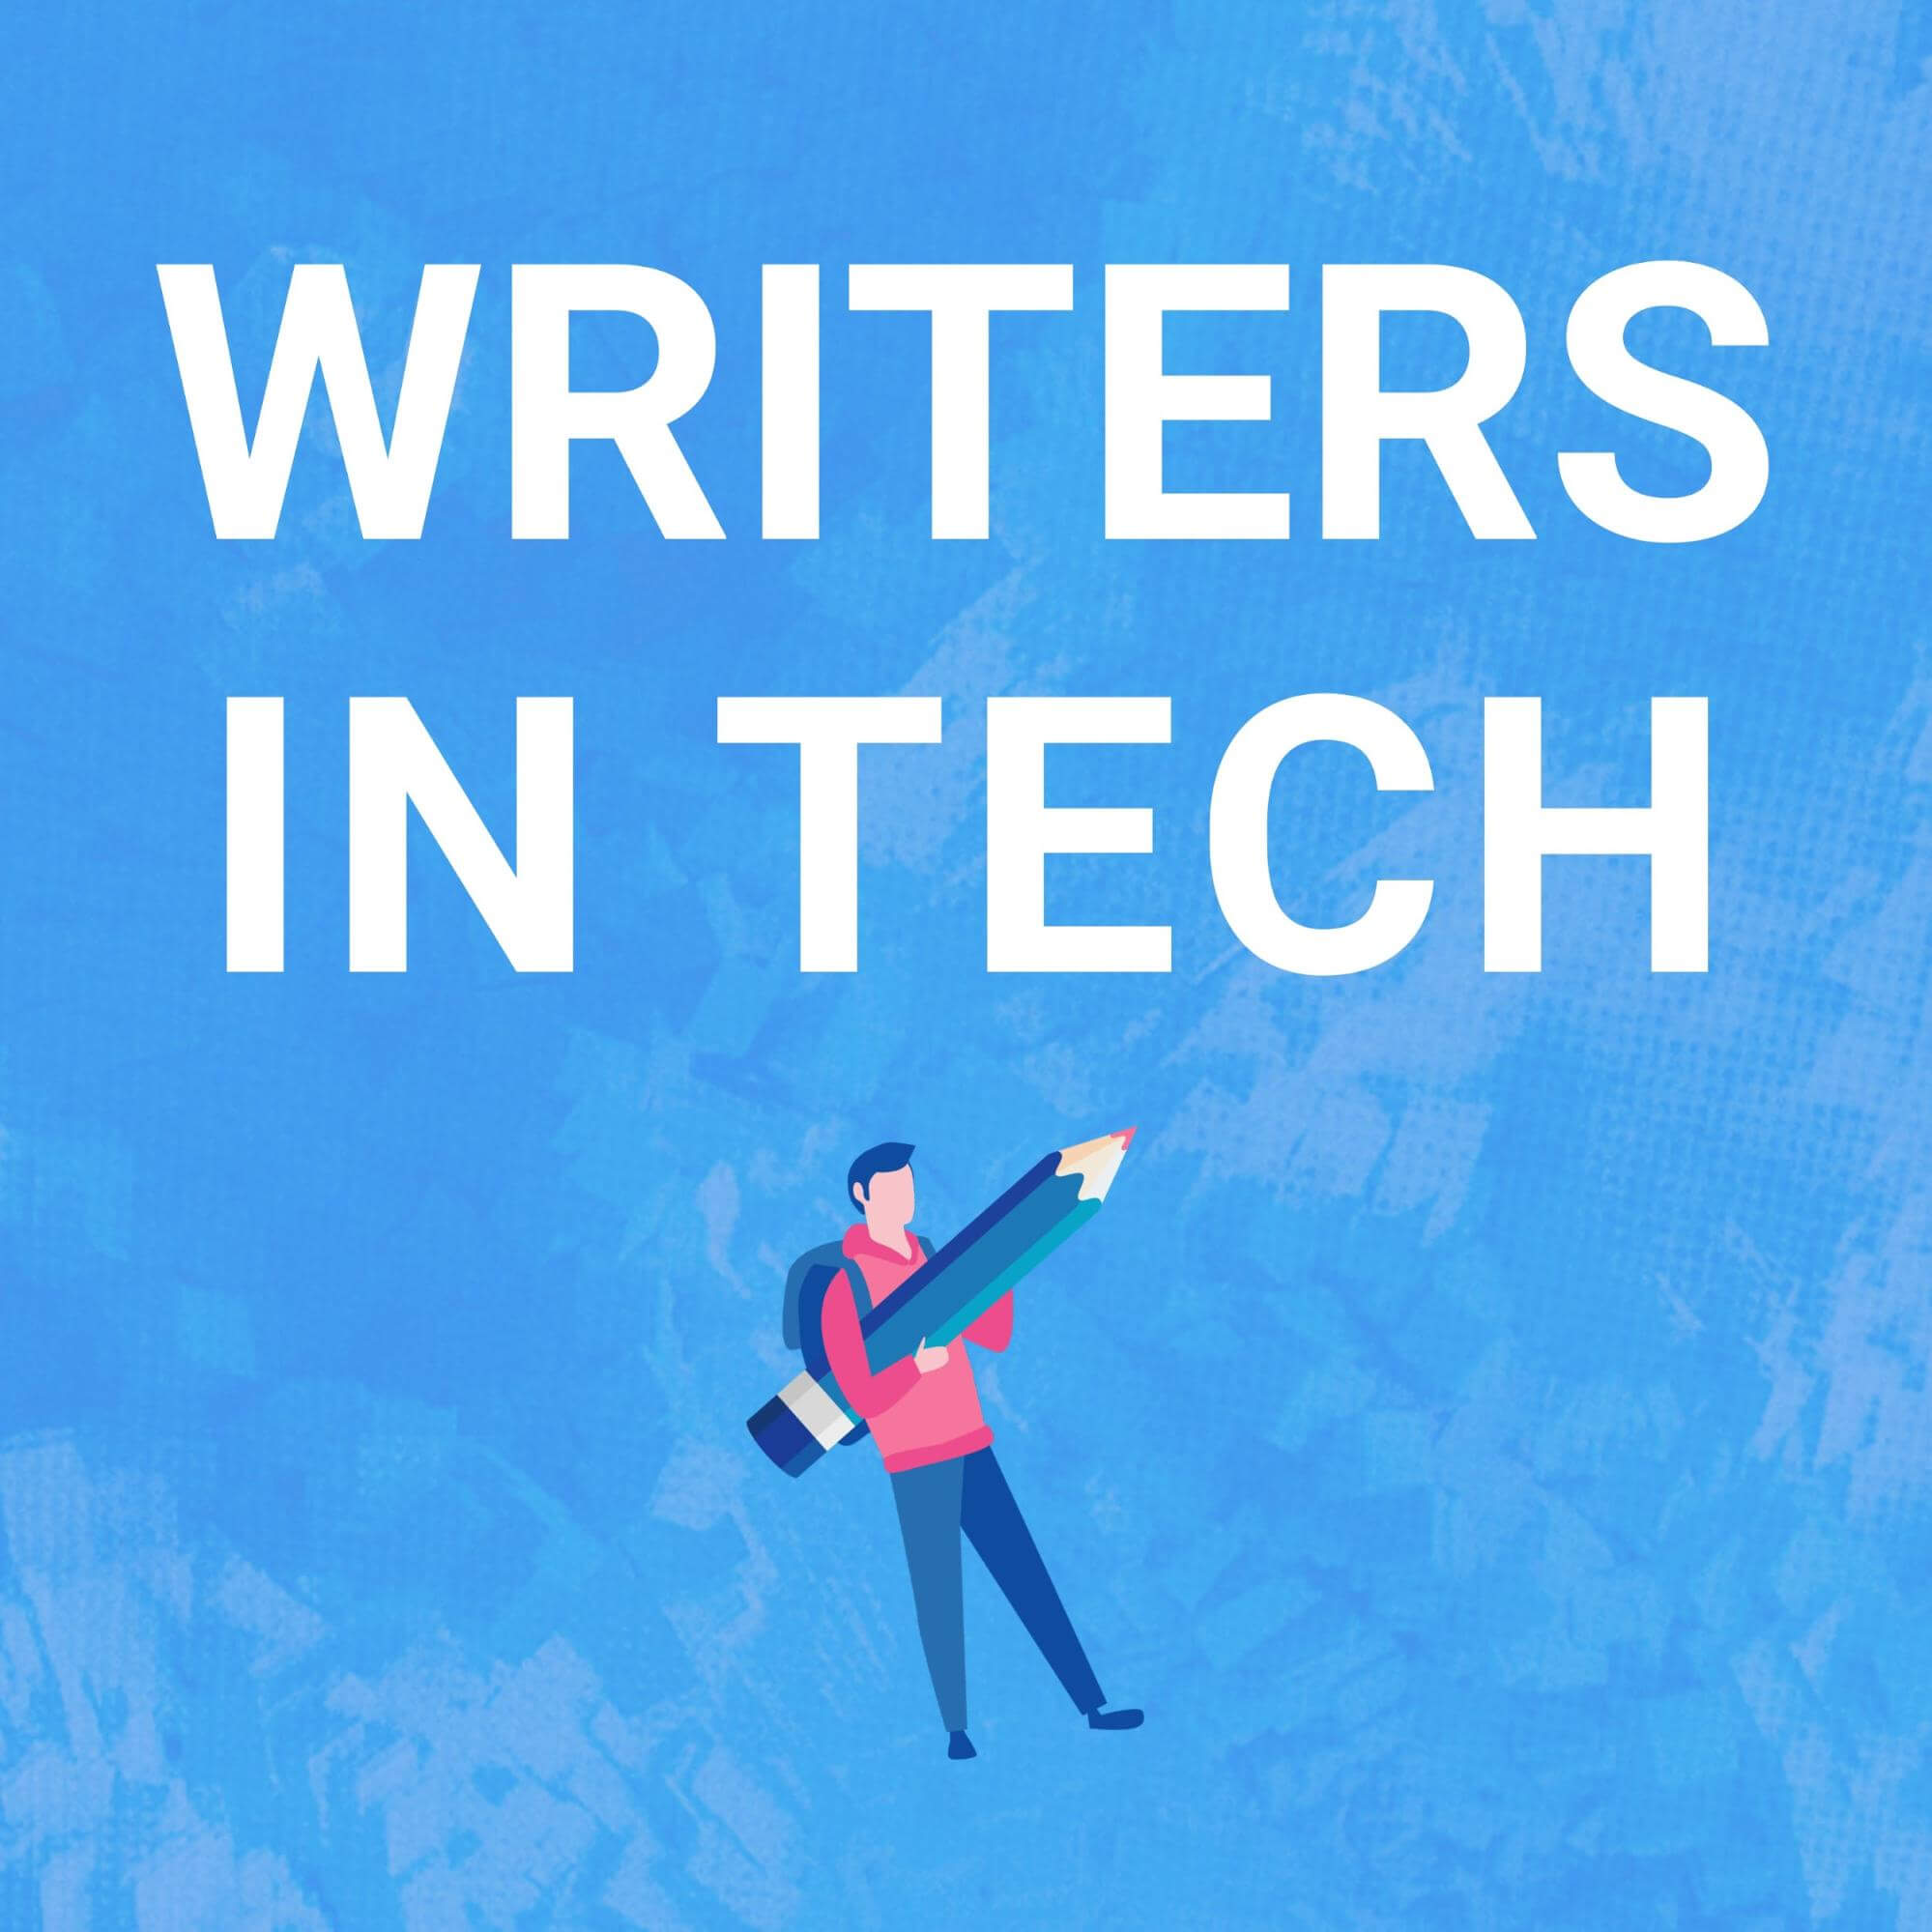 This ux writing podcast will help you determine if you it's the right career path for you